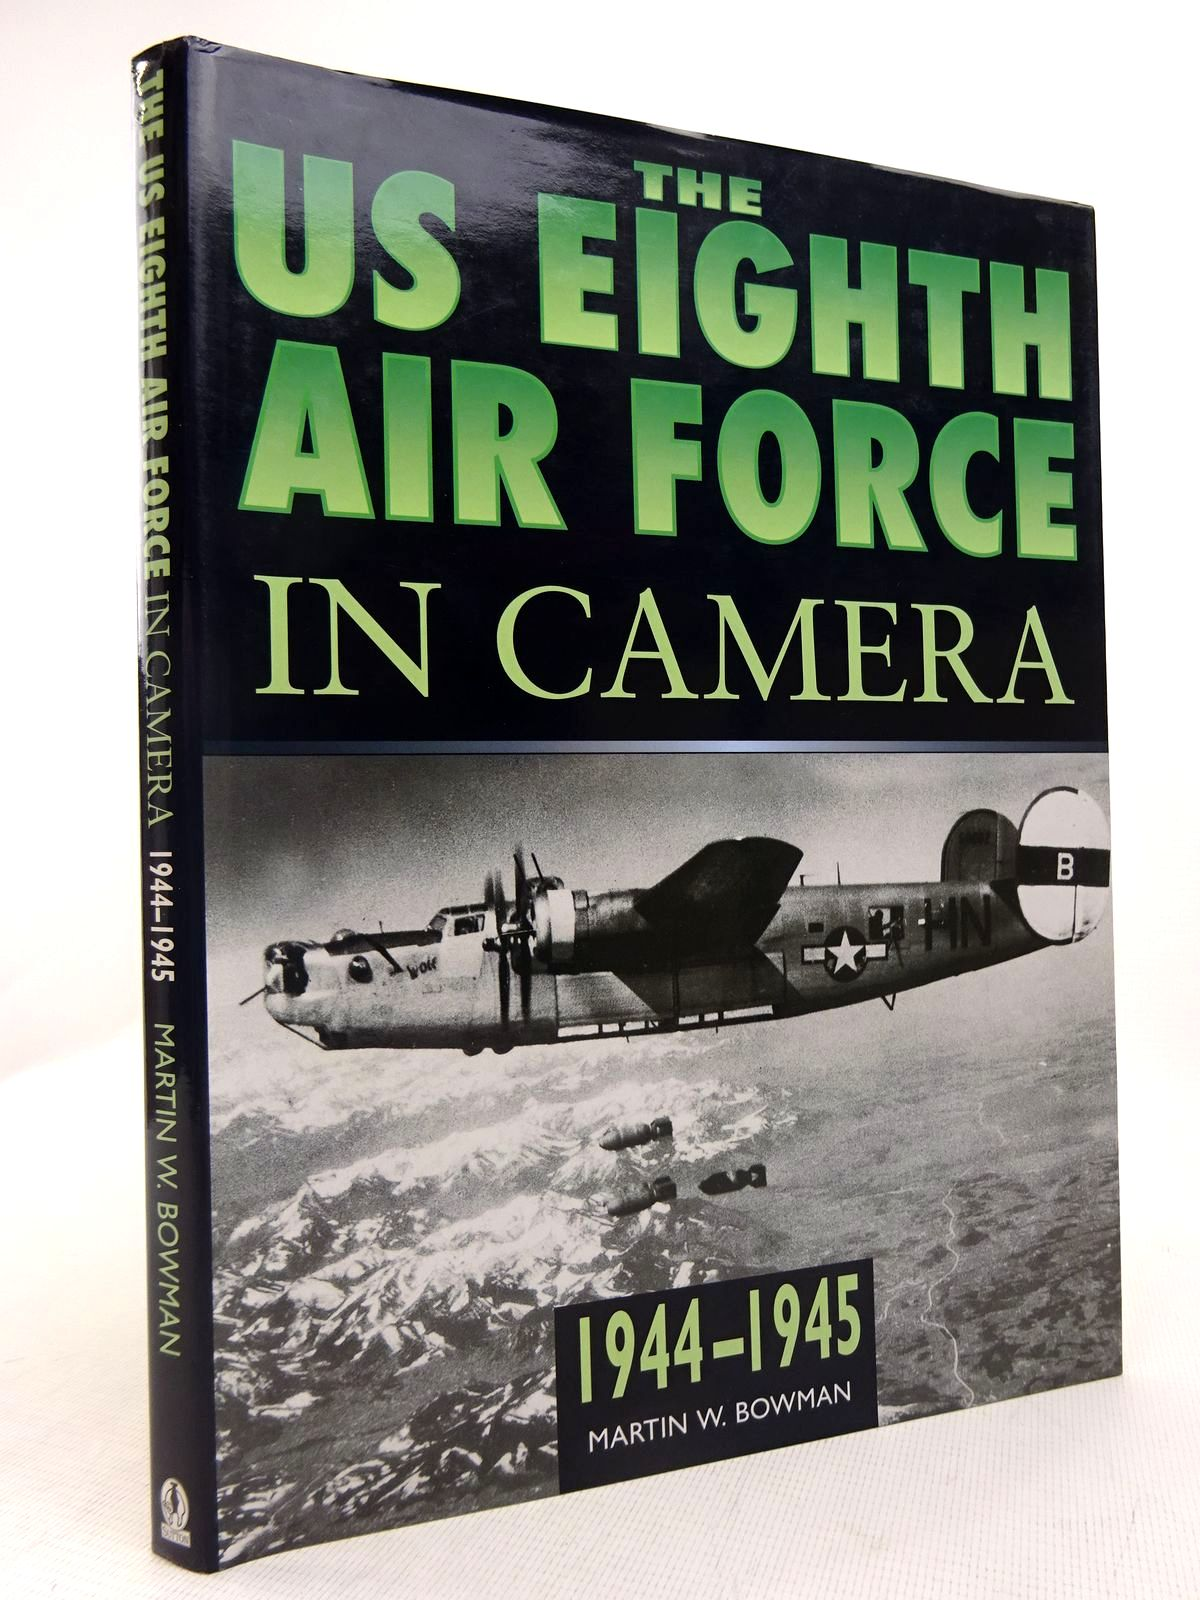 Photo of THE US 8TH AIR FORCE IN CAMERA 1944-1945 written by Bowman, Martin W. published by Sutton Publishing (STOCK CODE: 1816919)  for sale by Stella & Rose's Books